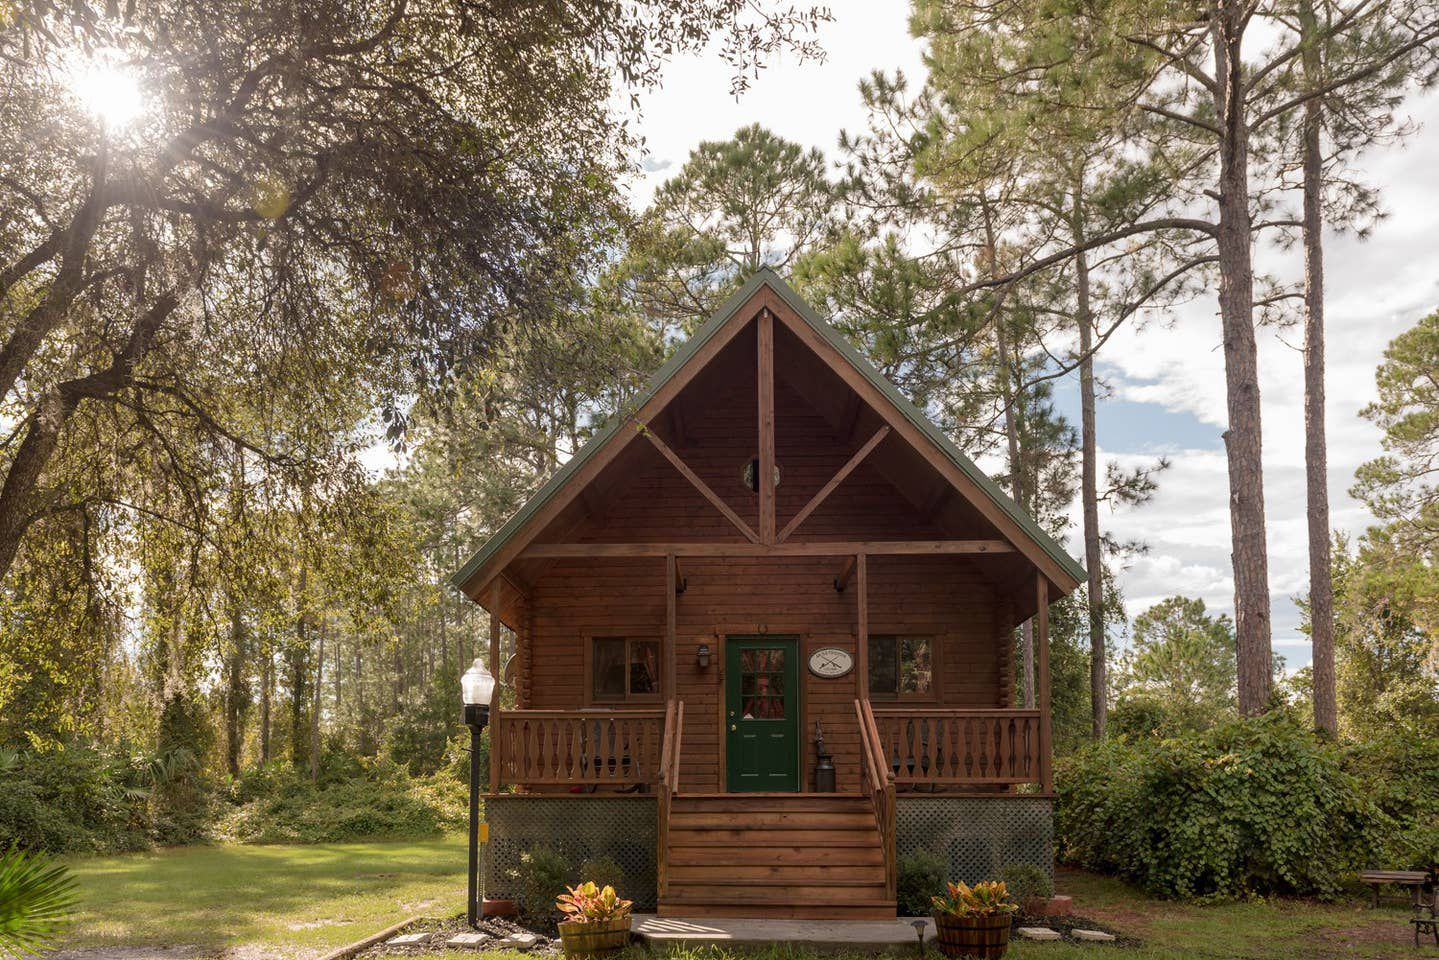 The 9 Best Florida Cabin Rentals of 2020